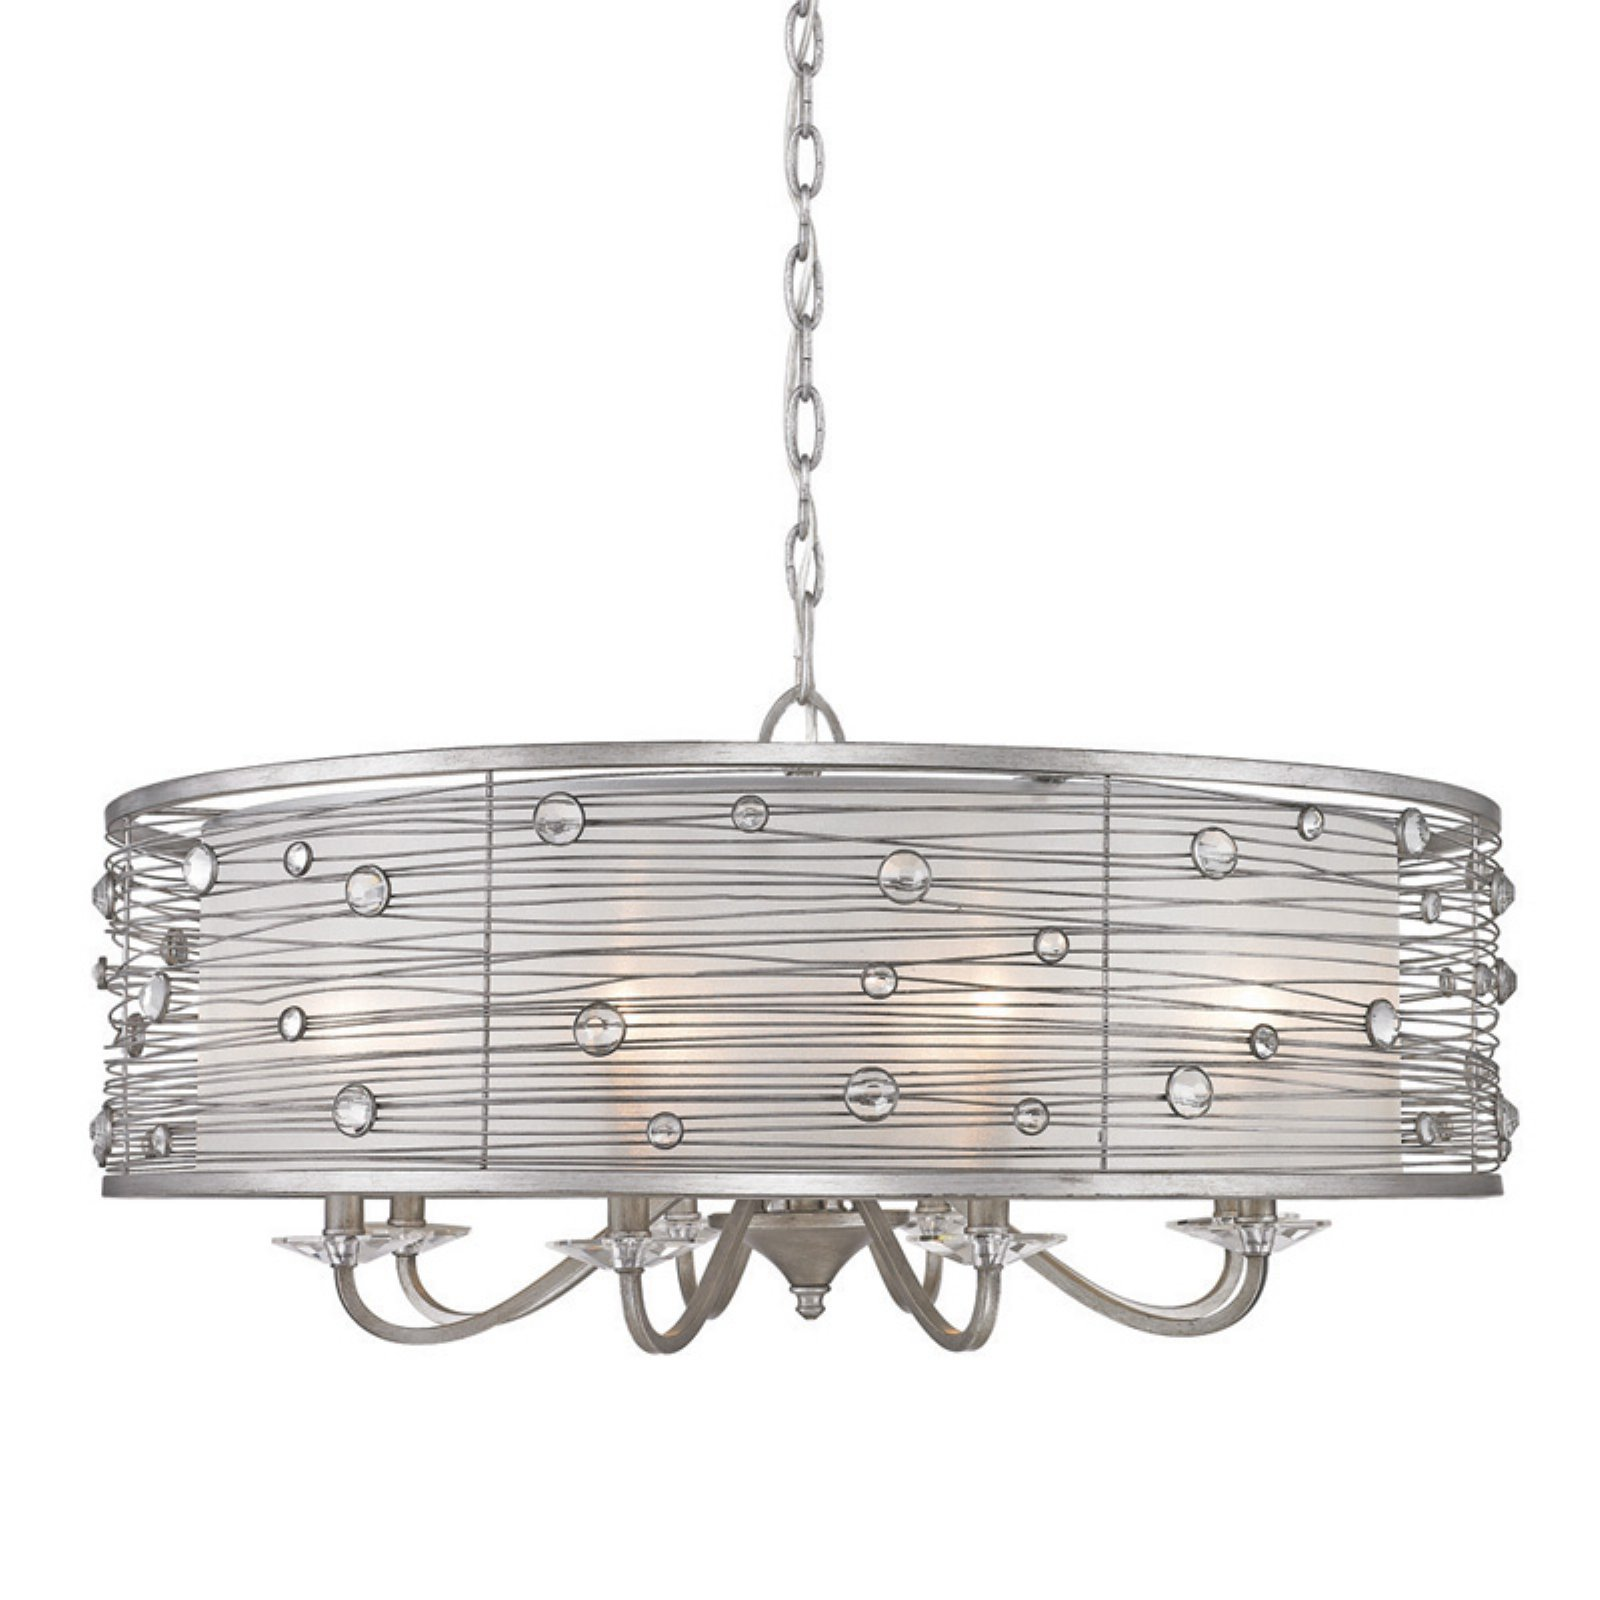 golden lighting chandelier. Golden Lighting Joia Eight Light Chandelier - Peruvian Silver Finish 6